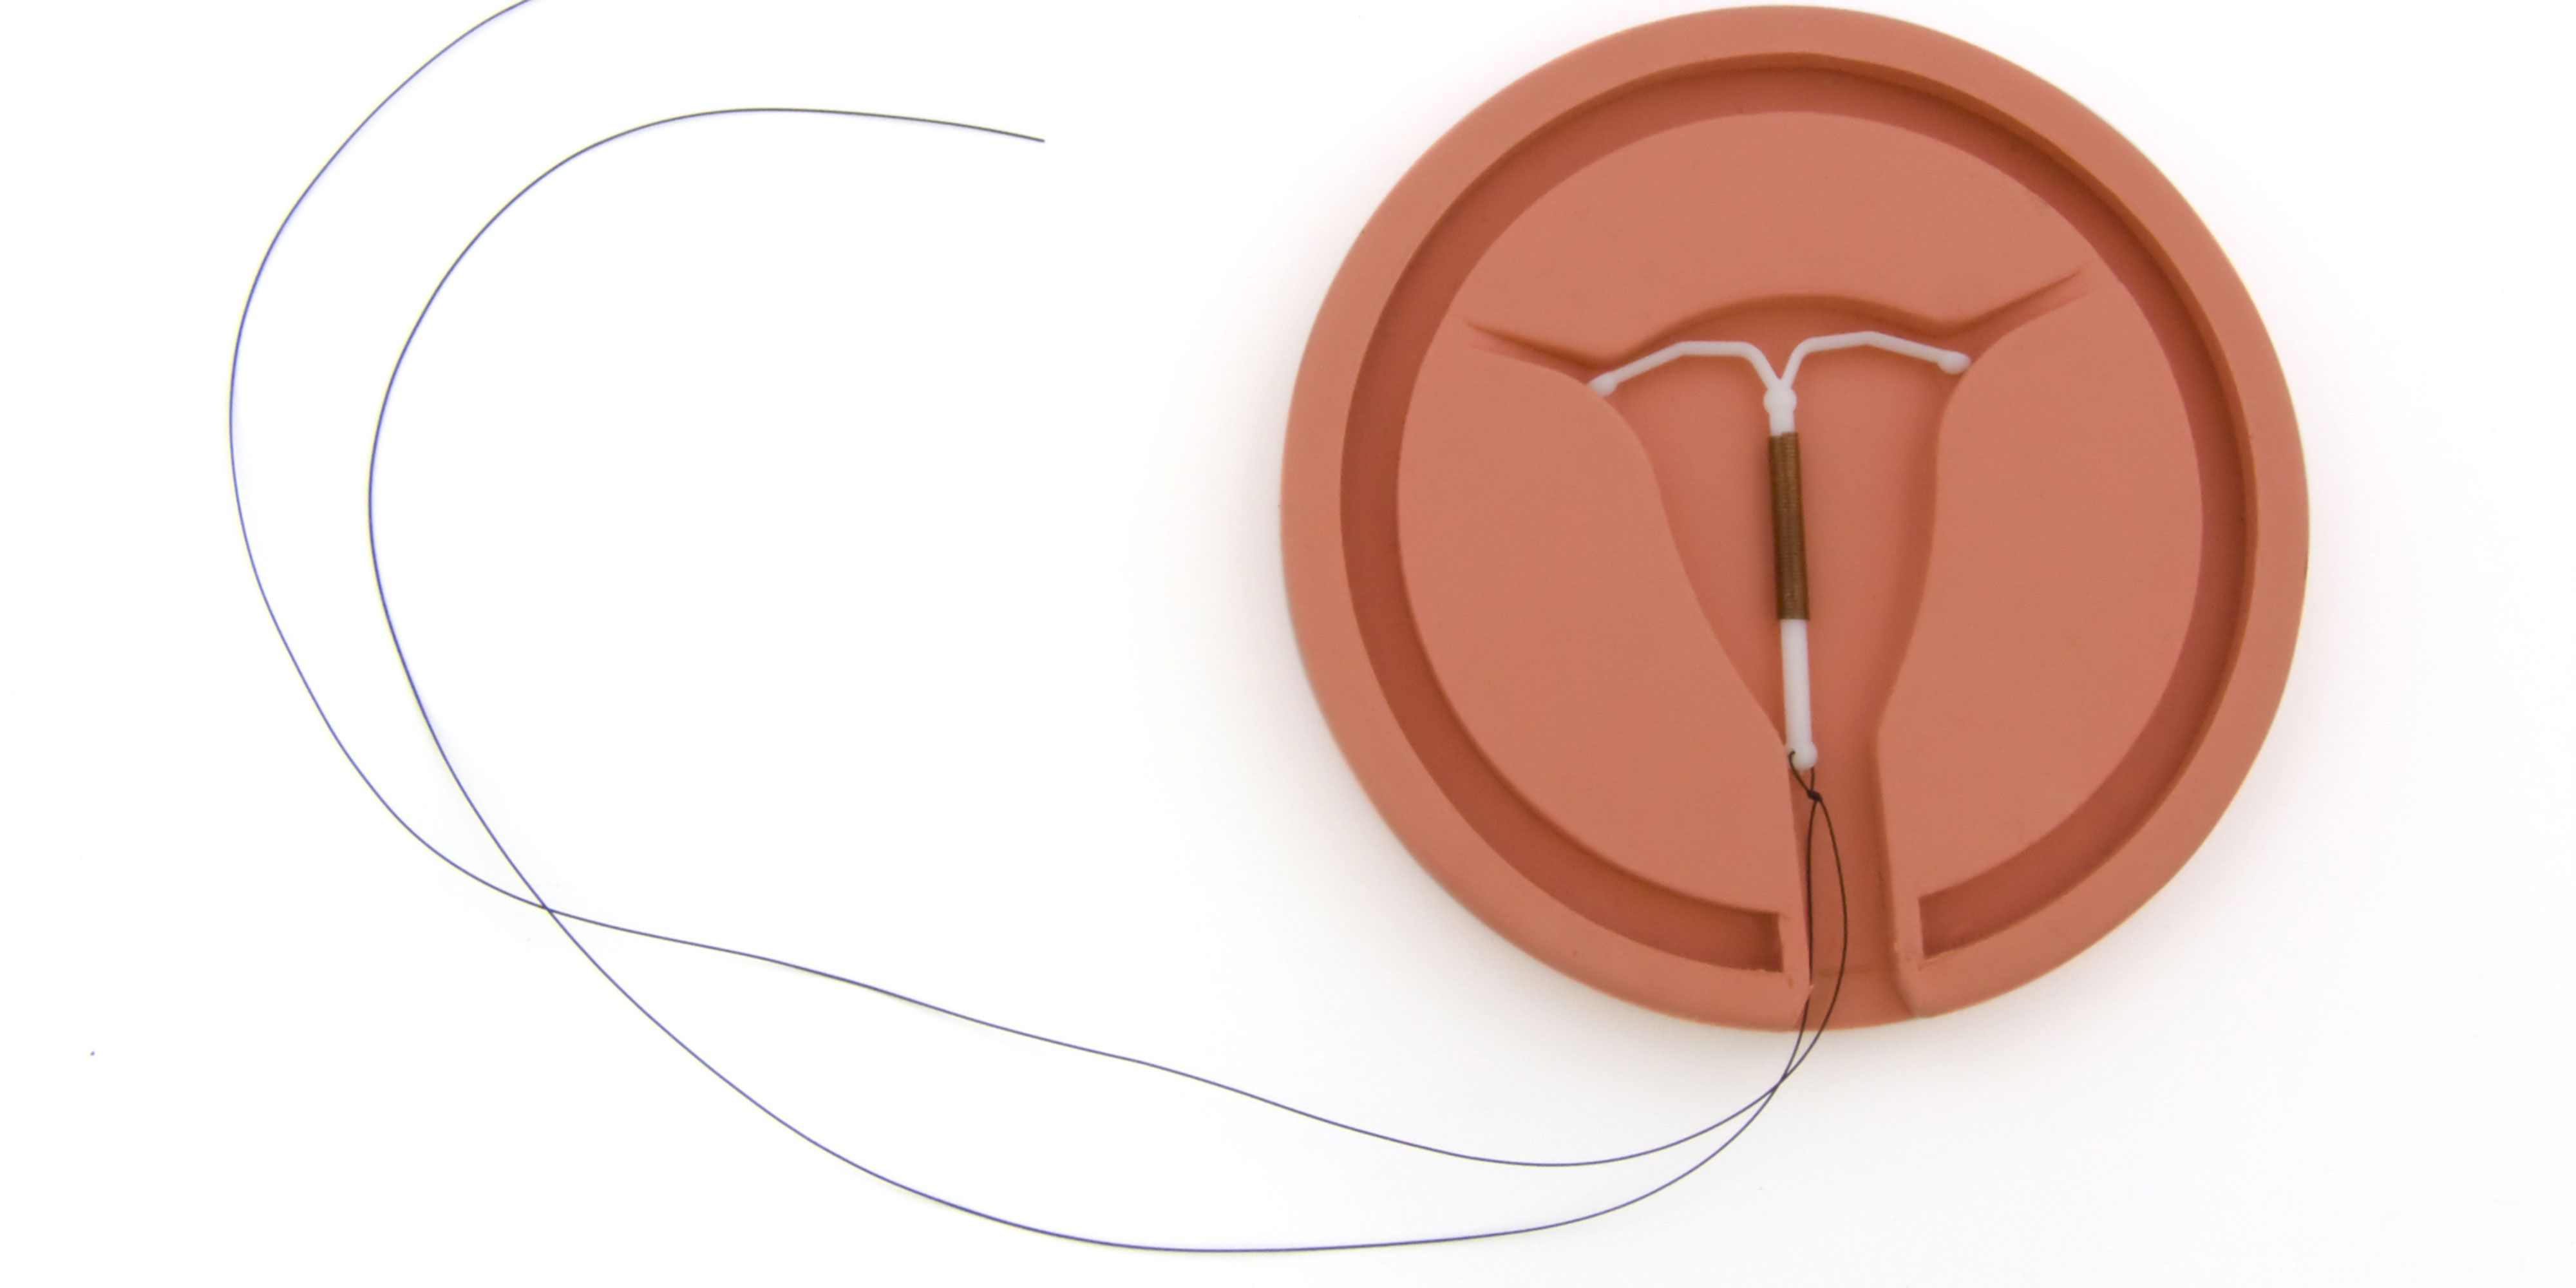 Abortive means: intrauterine devices 96